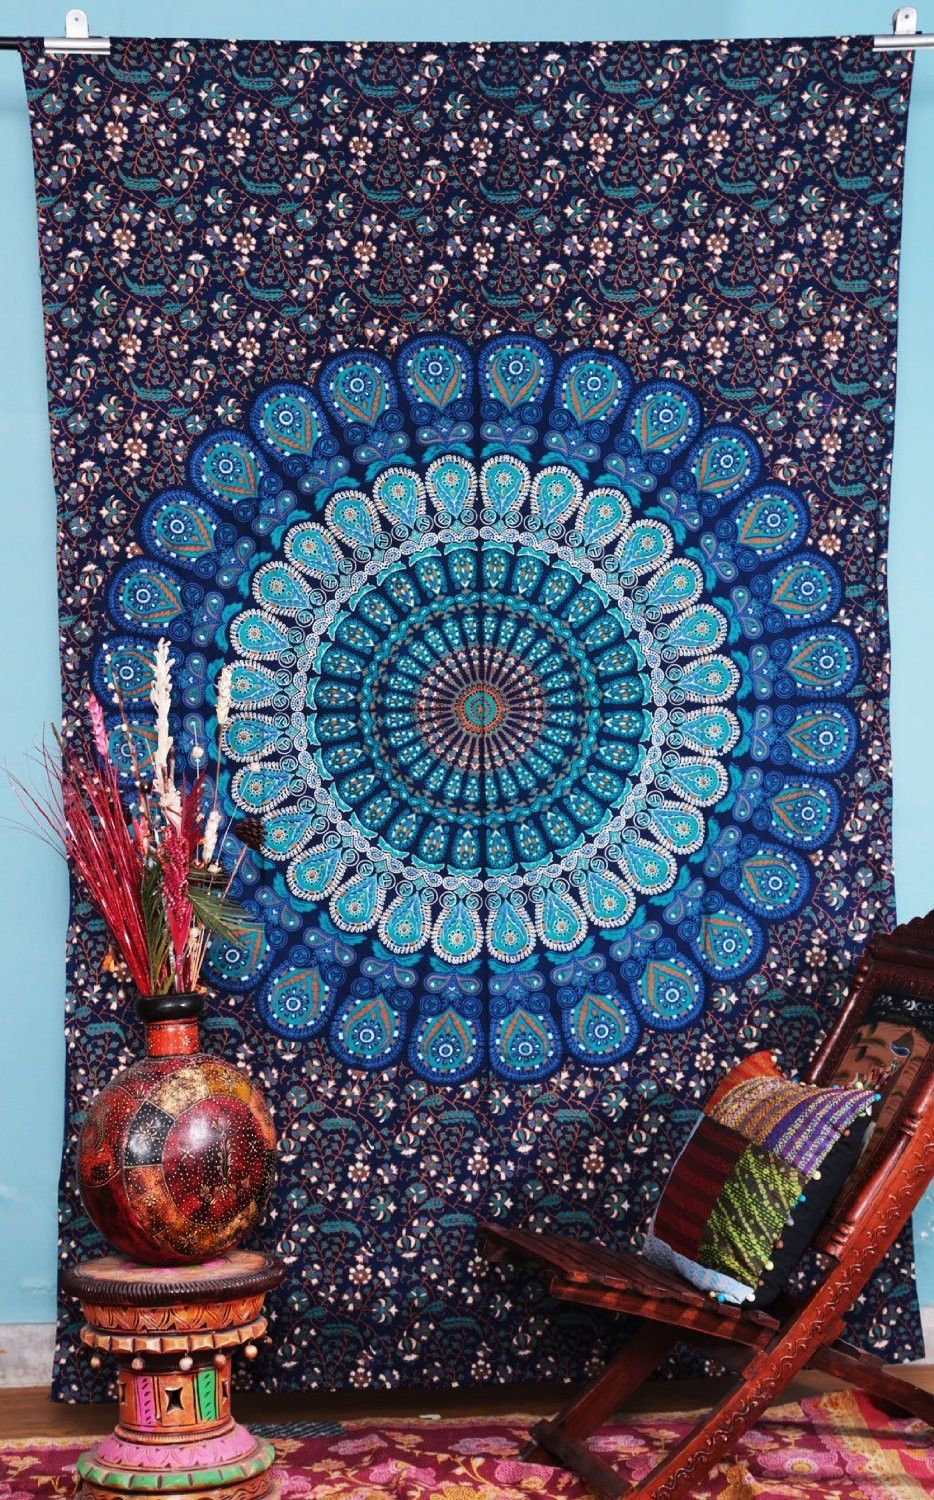 How To Hang Wall Tapestry i think i'm going to hang these tapestrys along the ceiling to